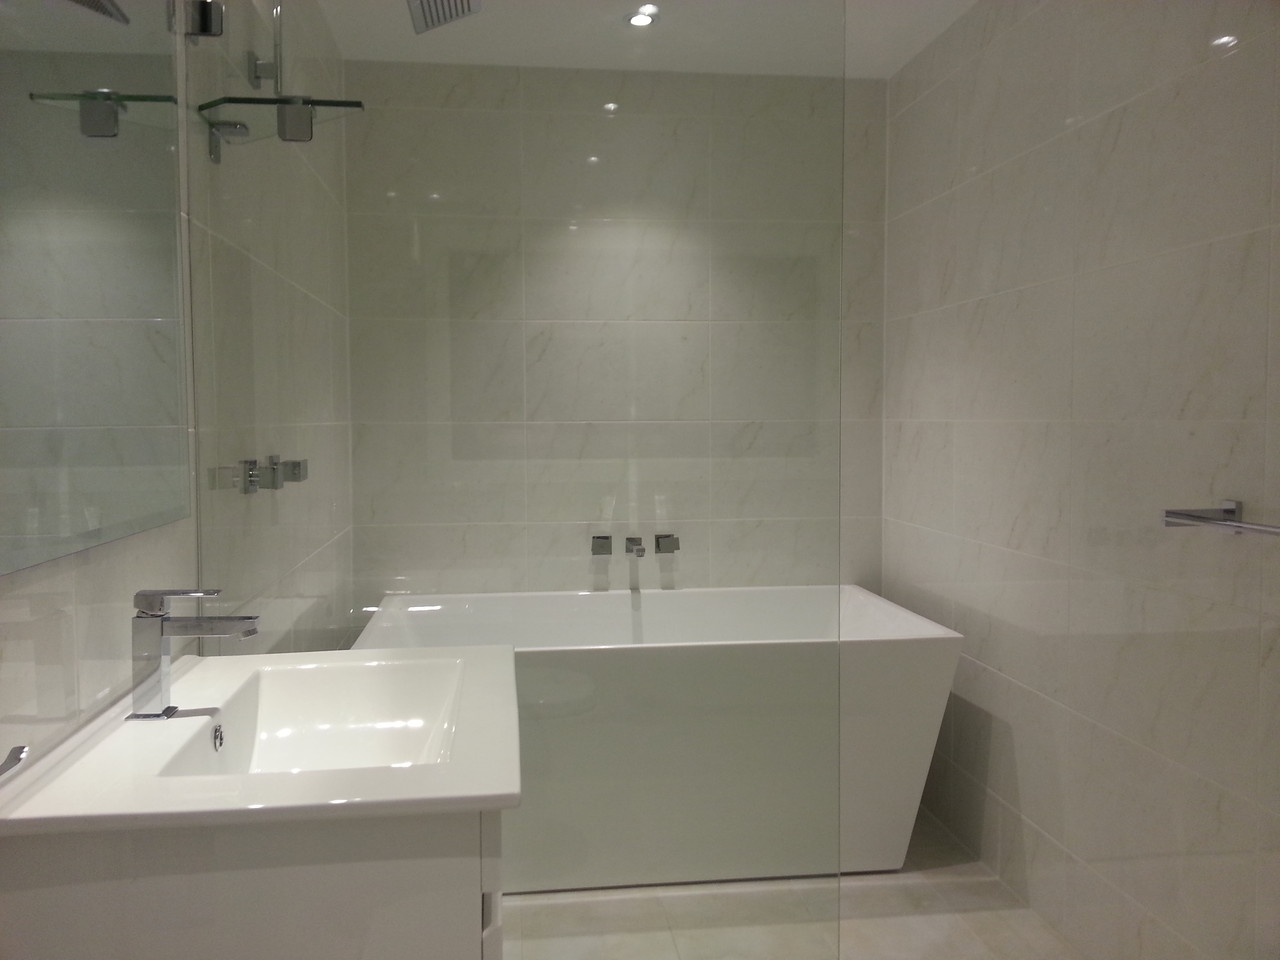 Adorable 10 bathroom renovation jobs sydney design for Bathroom design jobs newcastle